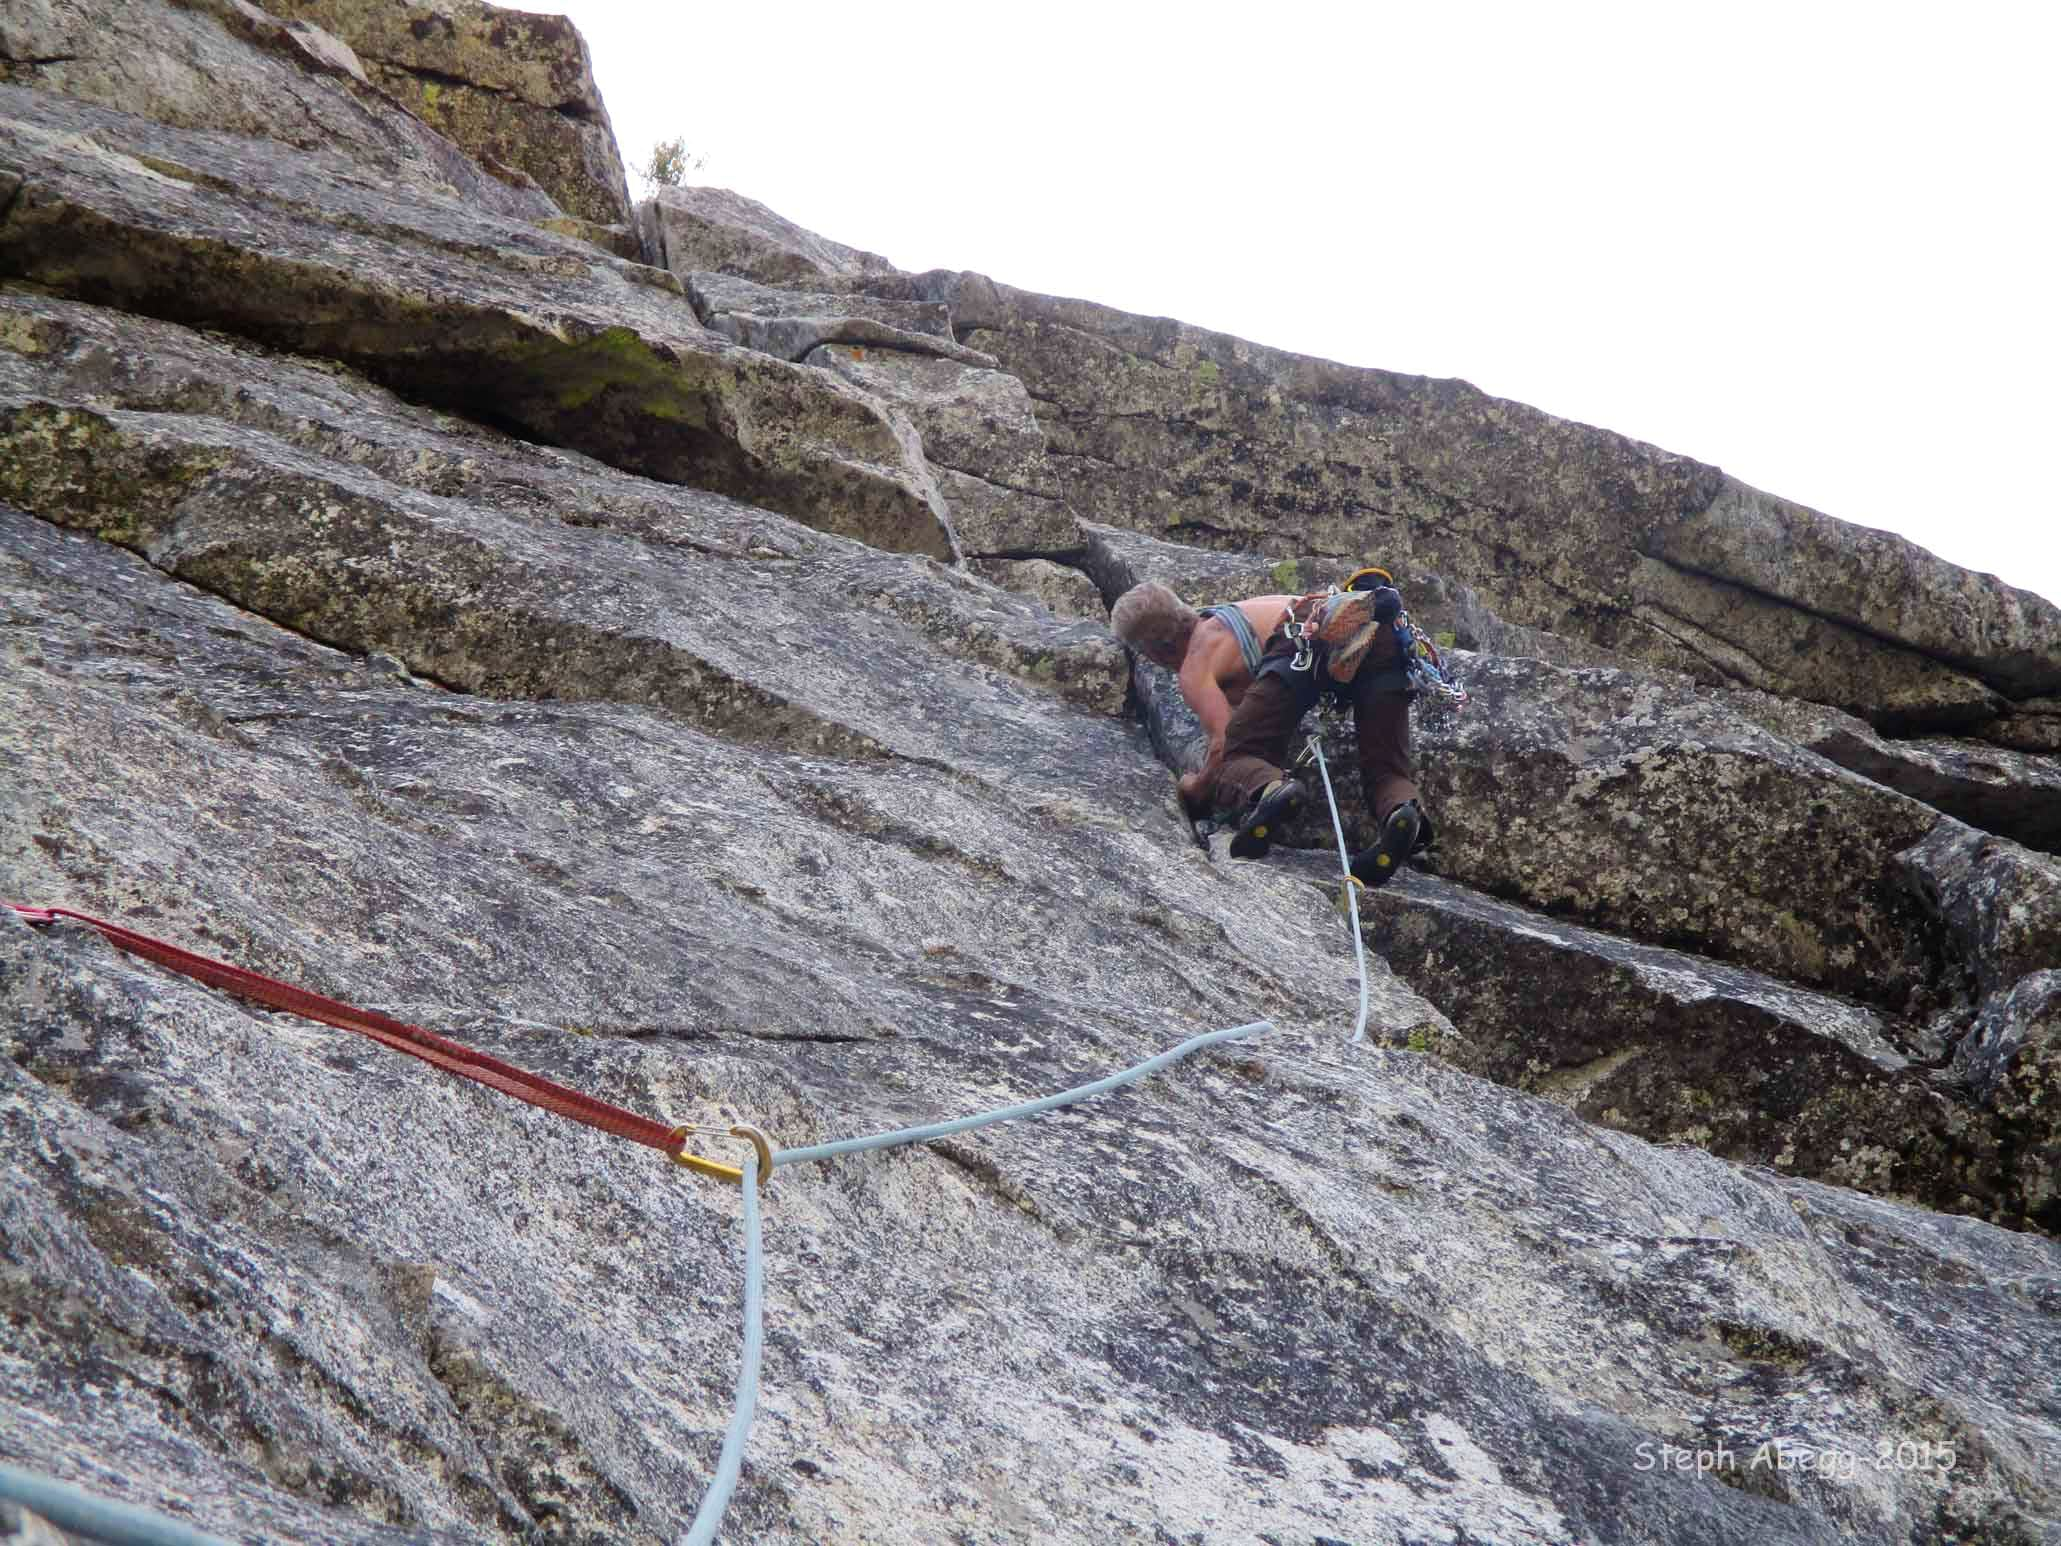 Scimitar, 5.9, 3 Pitches